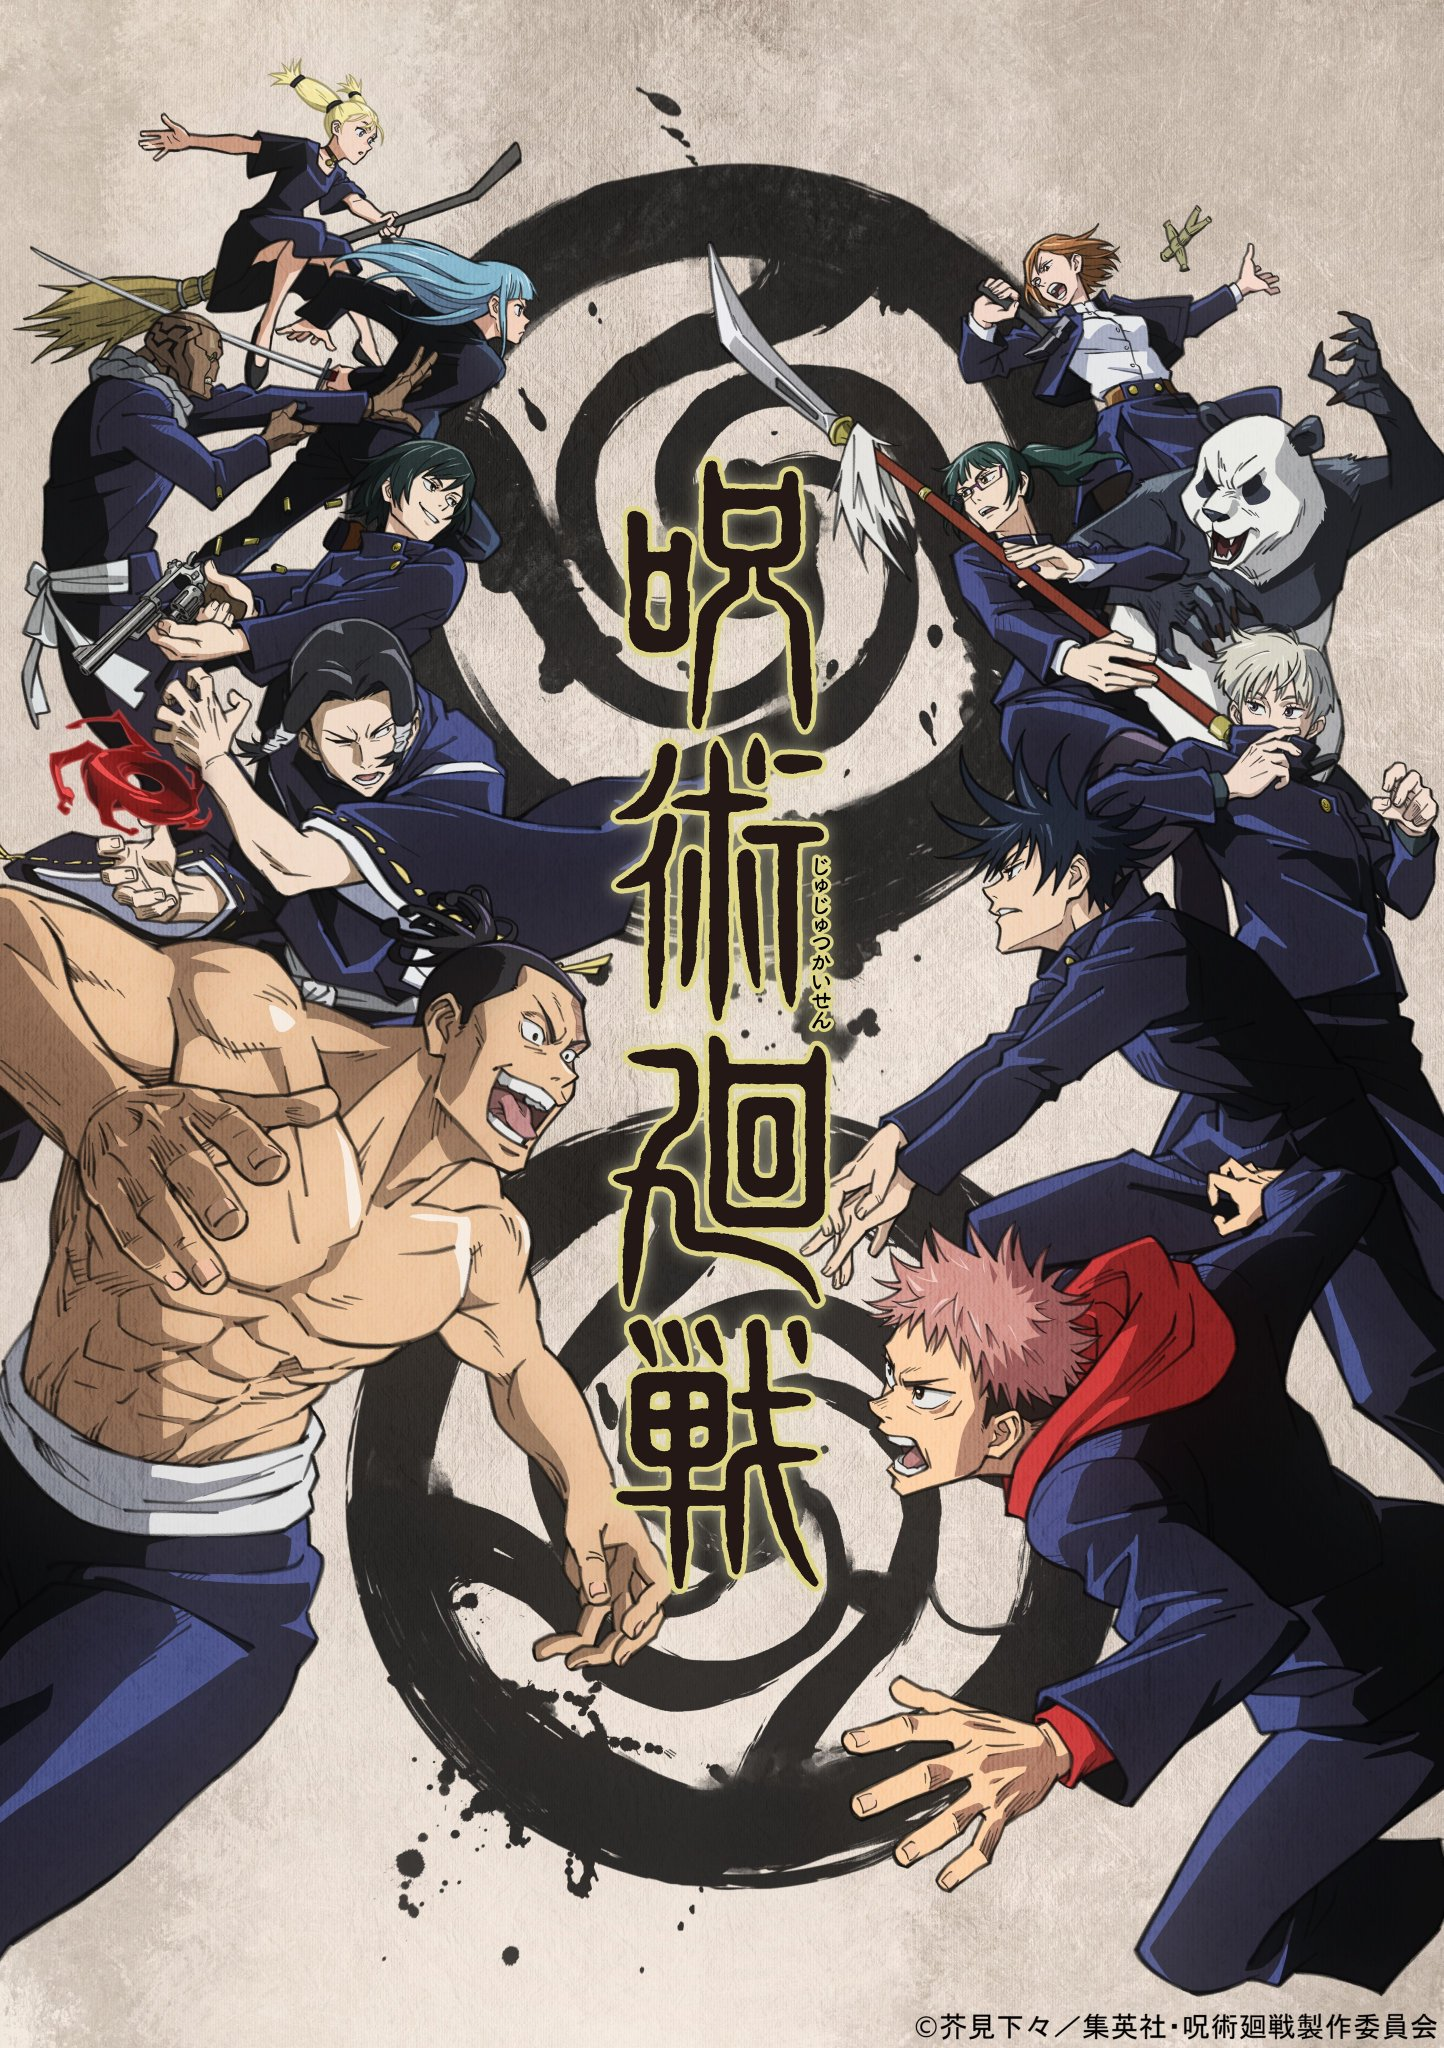 Jujutsu Kaisen's Anime to Enter the Kyoto Goodwill Event Arc in January 2021